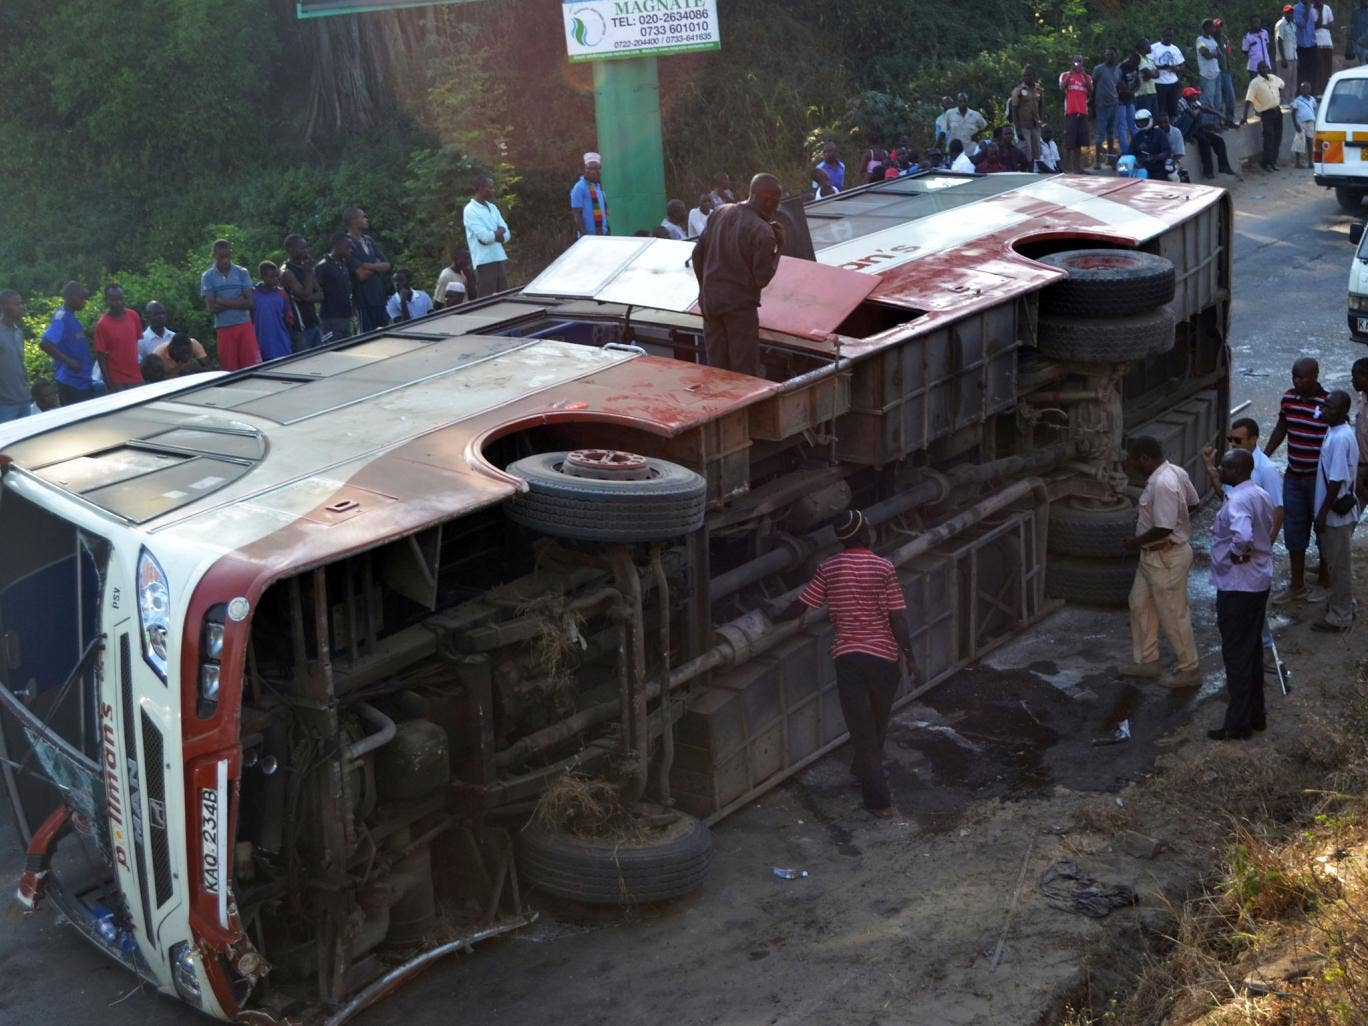 Up to 15 Britons have been hurt in a bus crash in Kenya